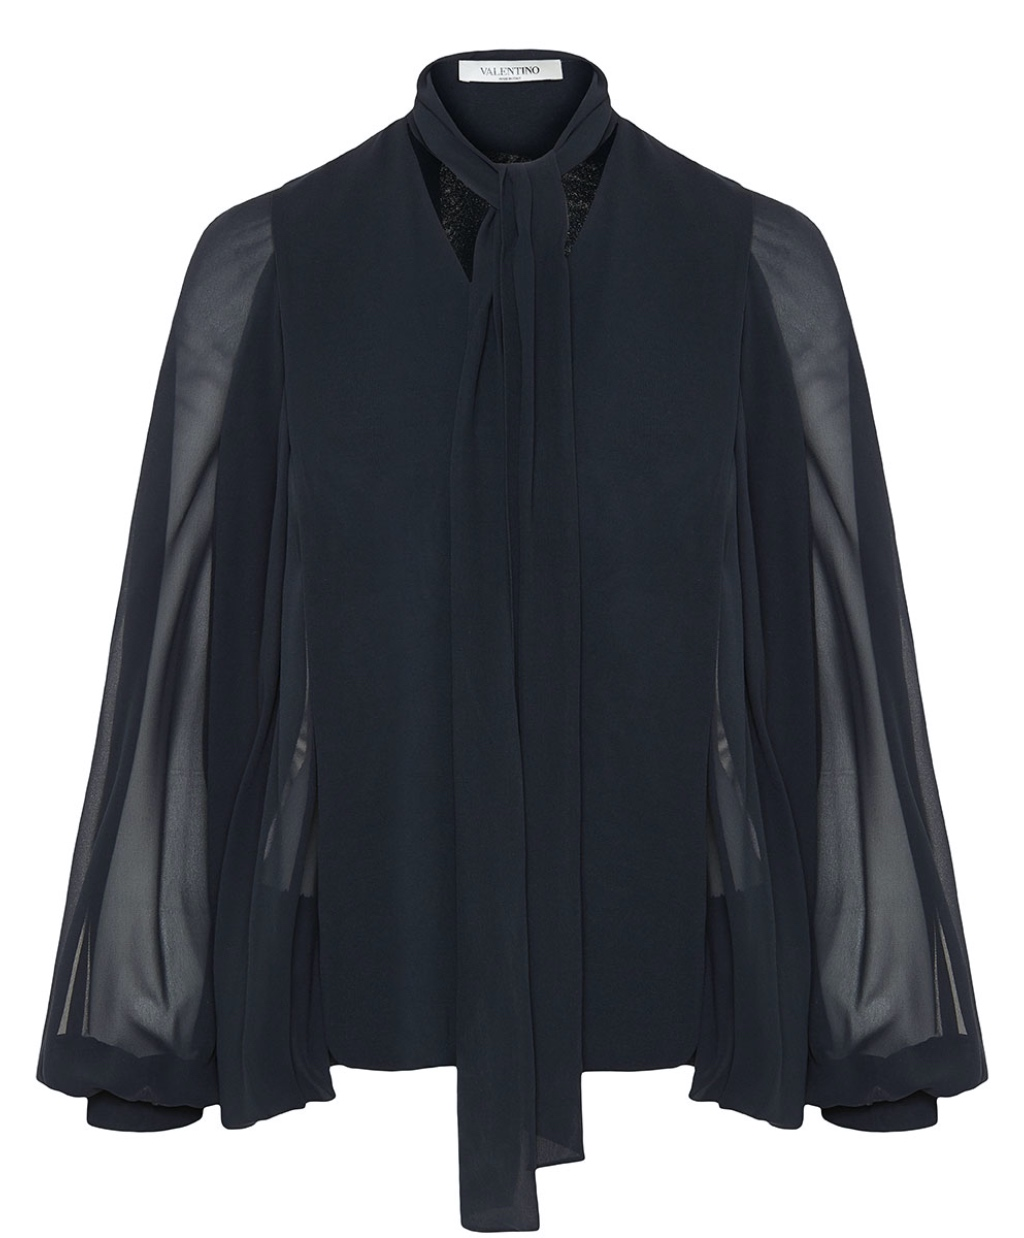 Bow tie-balloon sleeves blouse Valentino